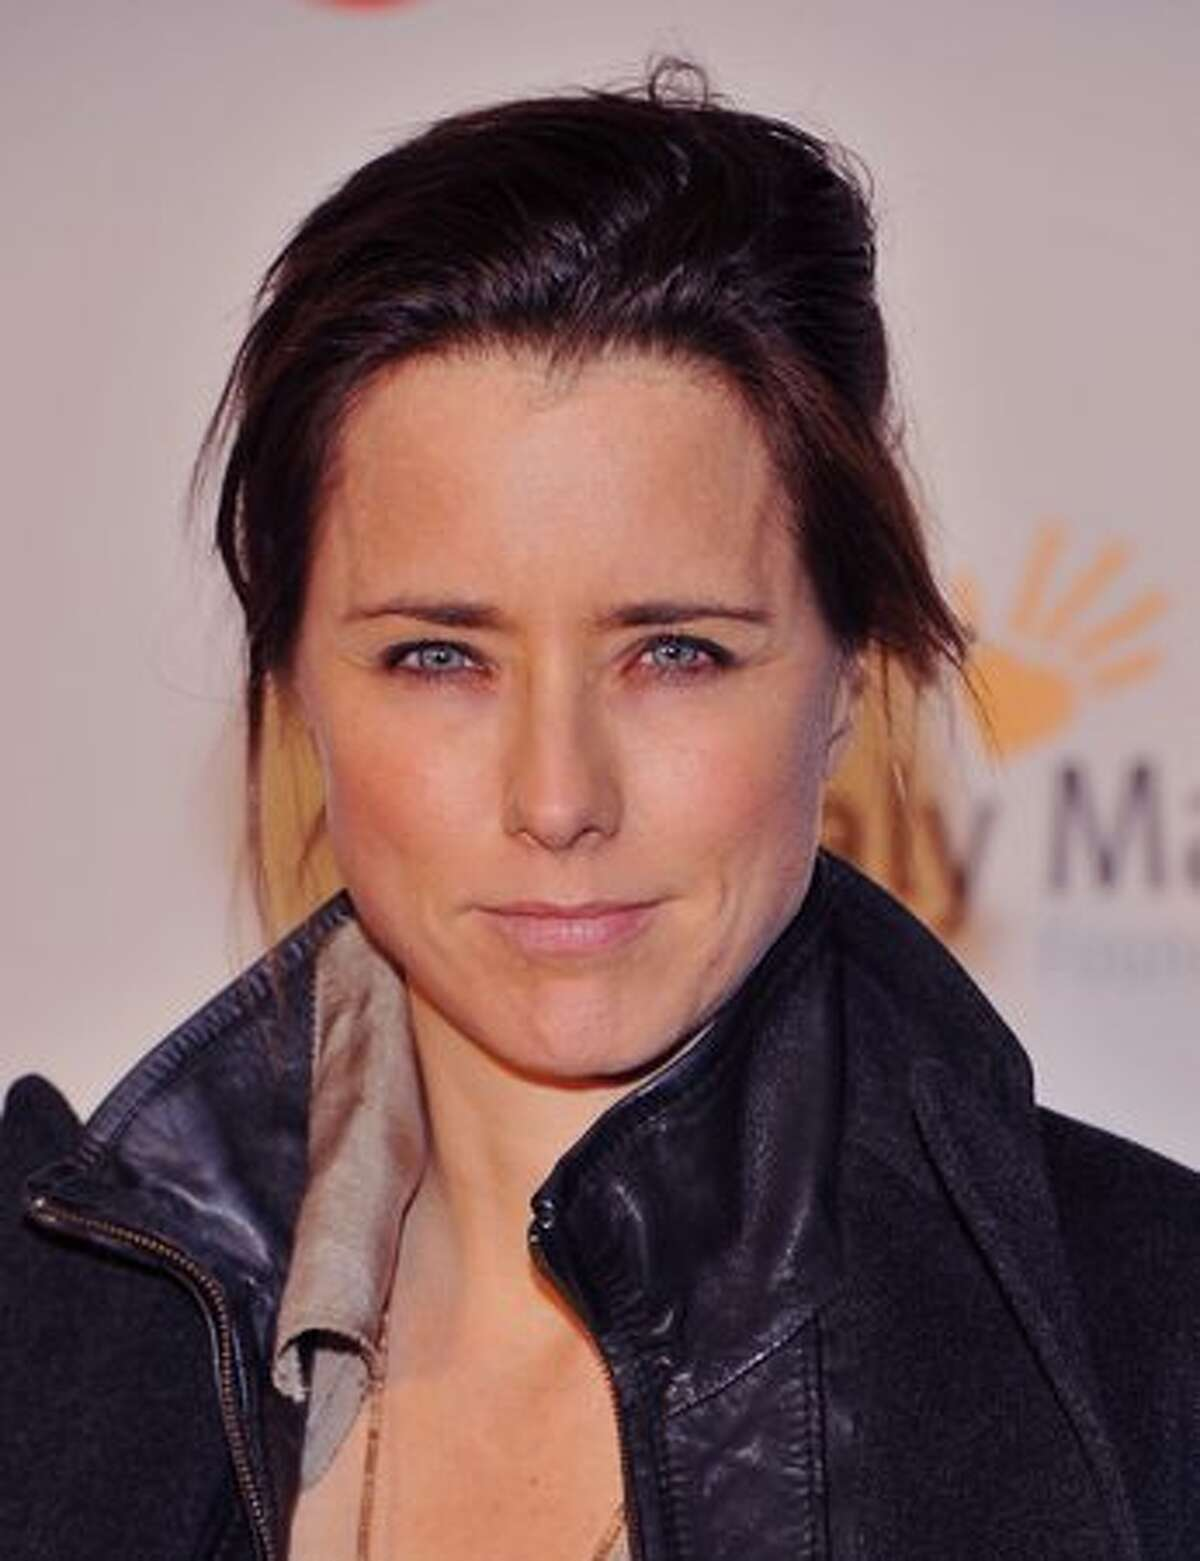 """Actress Tea Leoni attends the world premiere of """"Not My Life"""" at Alice Tully Hall in New York City."""